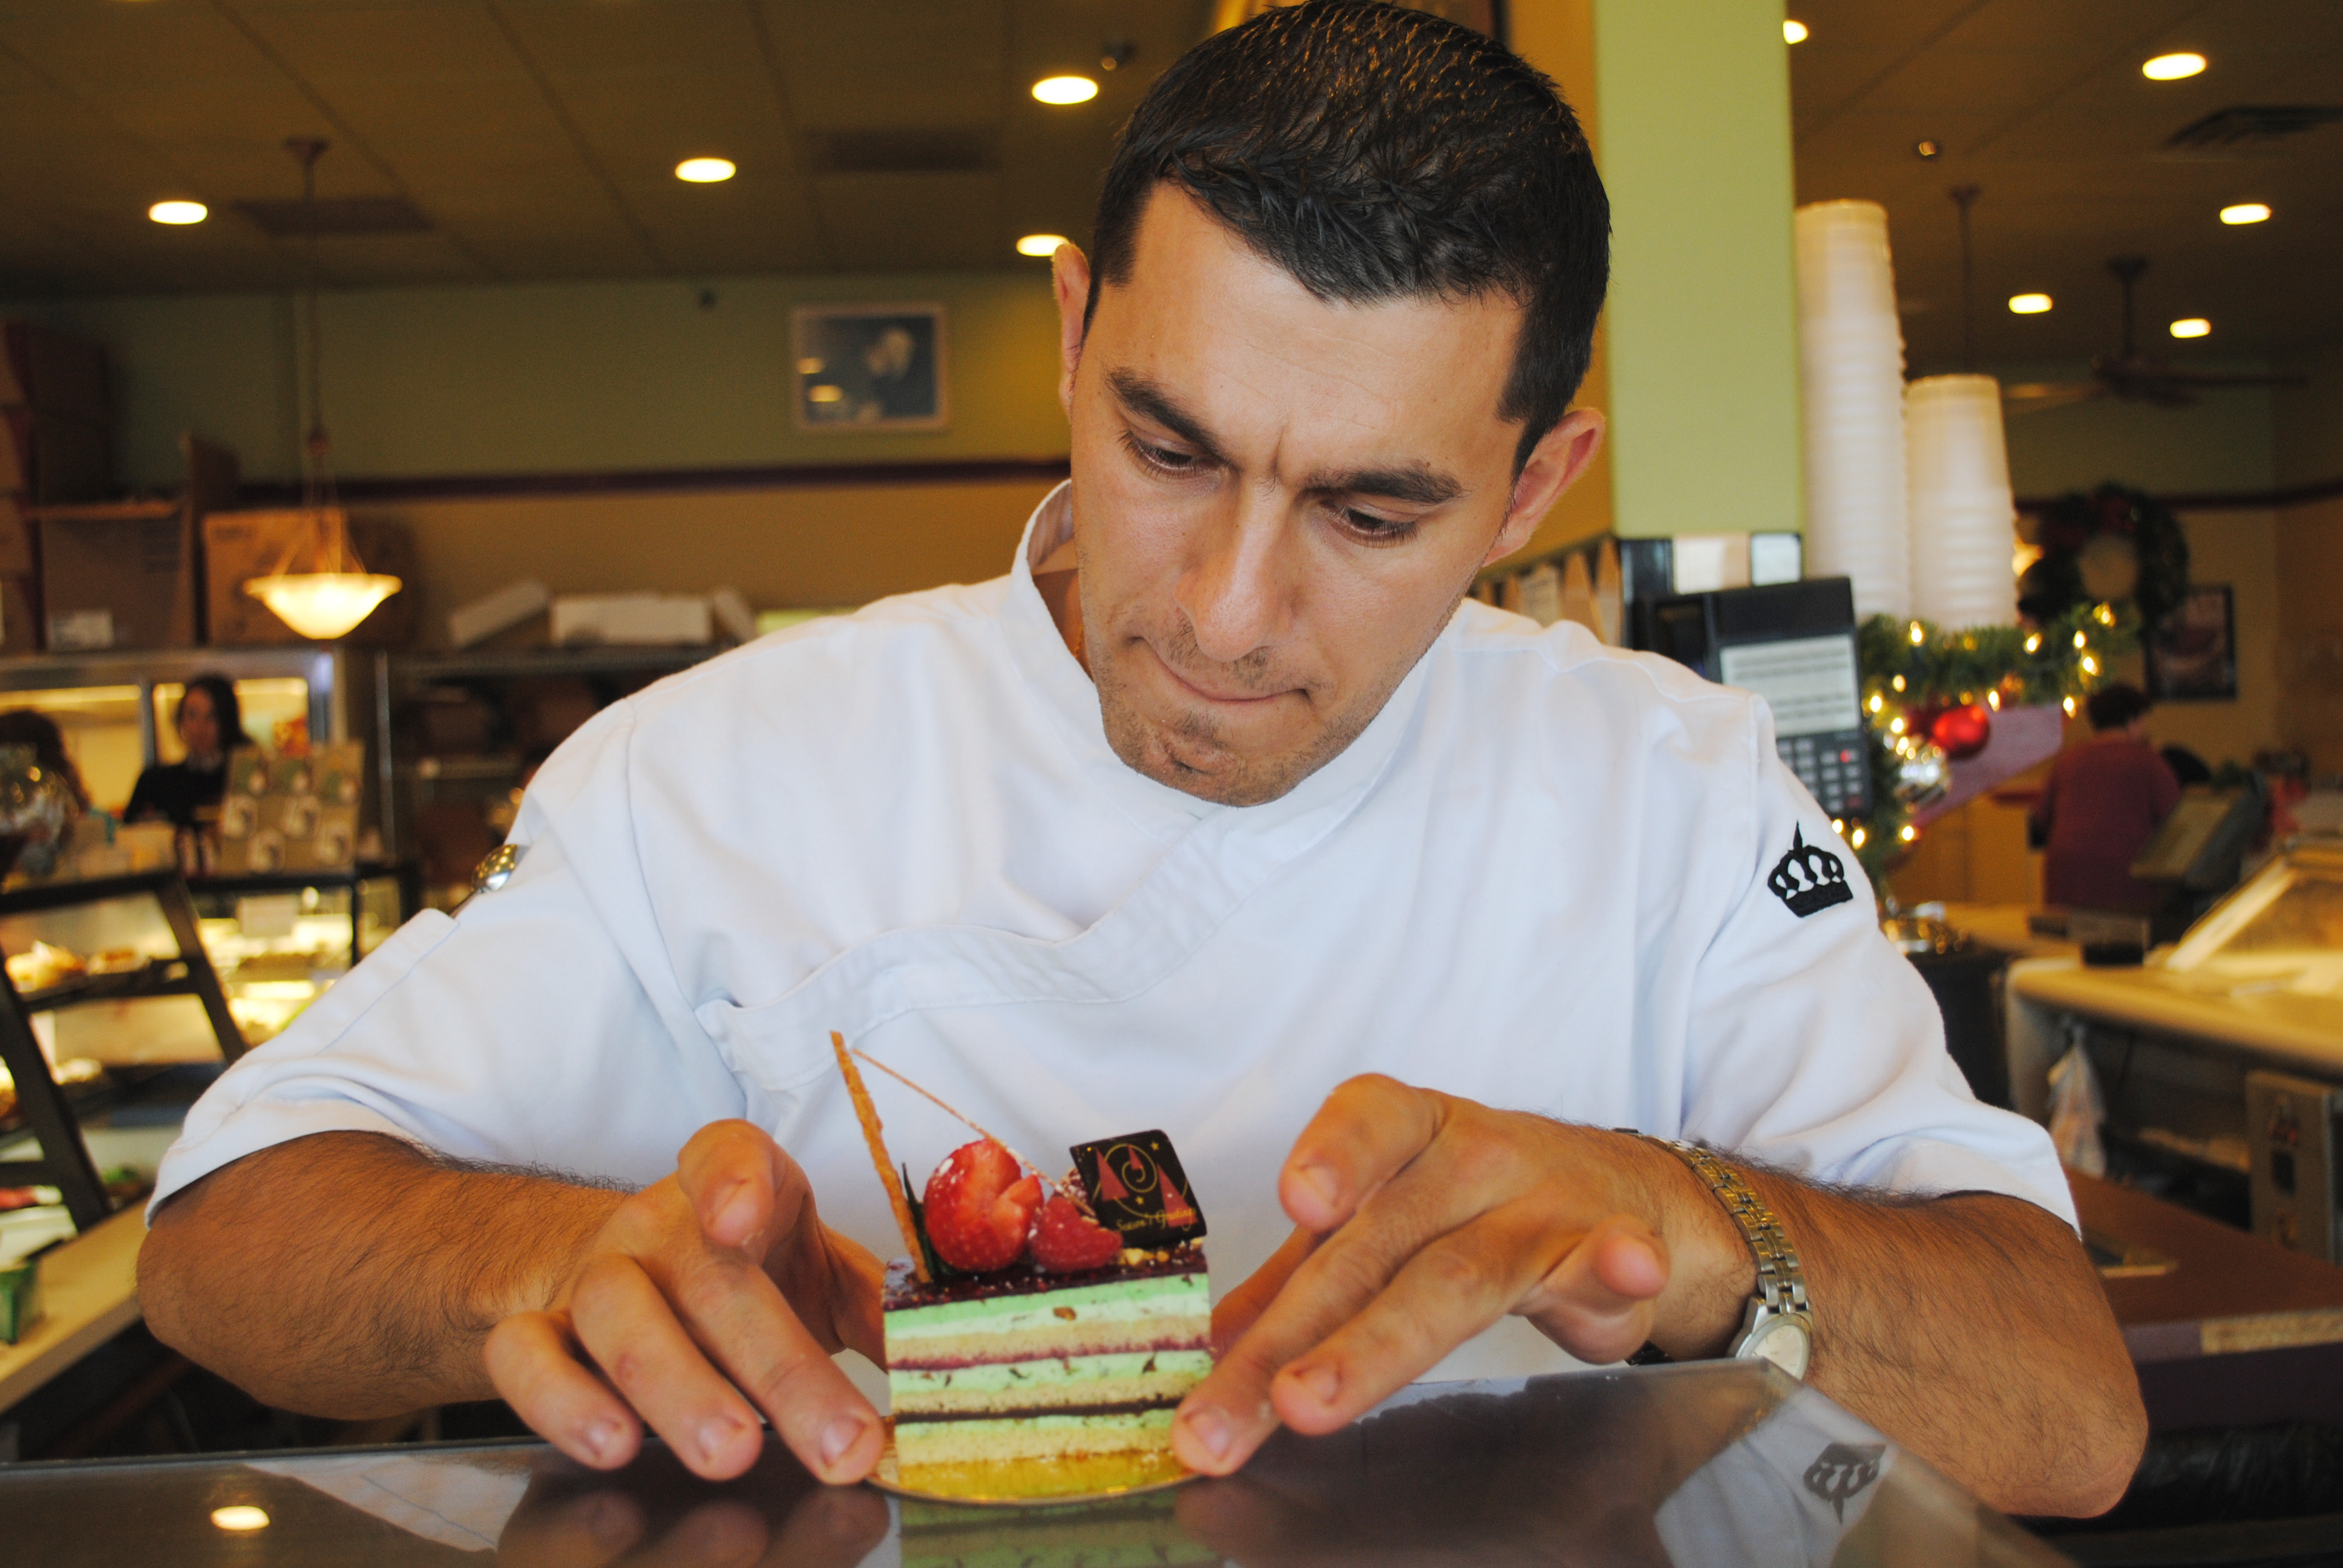 Cake Artist Job Description : Renowned pastry chef adds icing to the cake at local shop ...